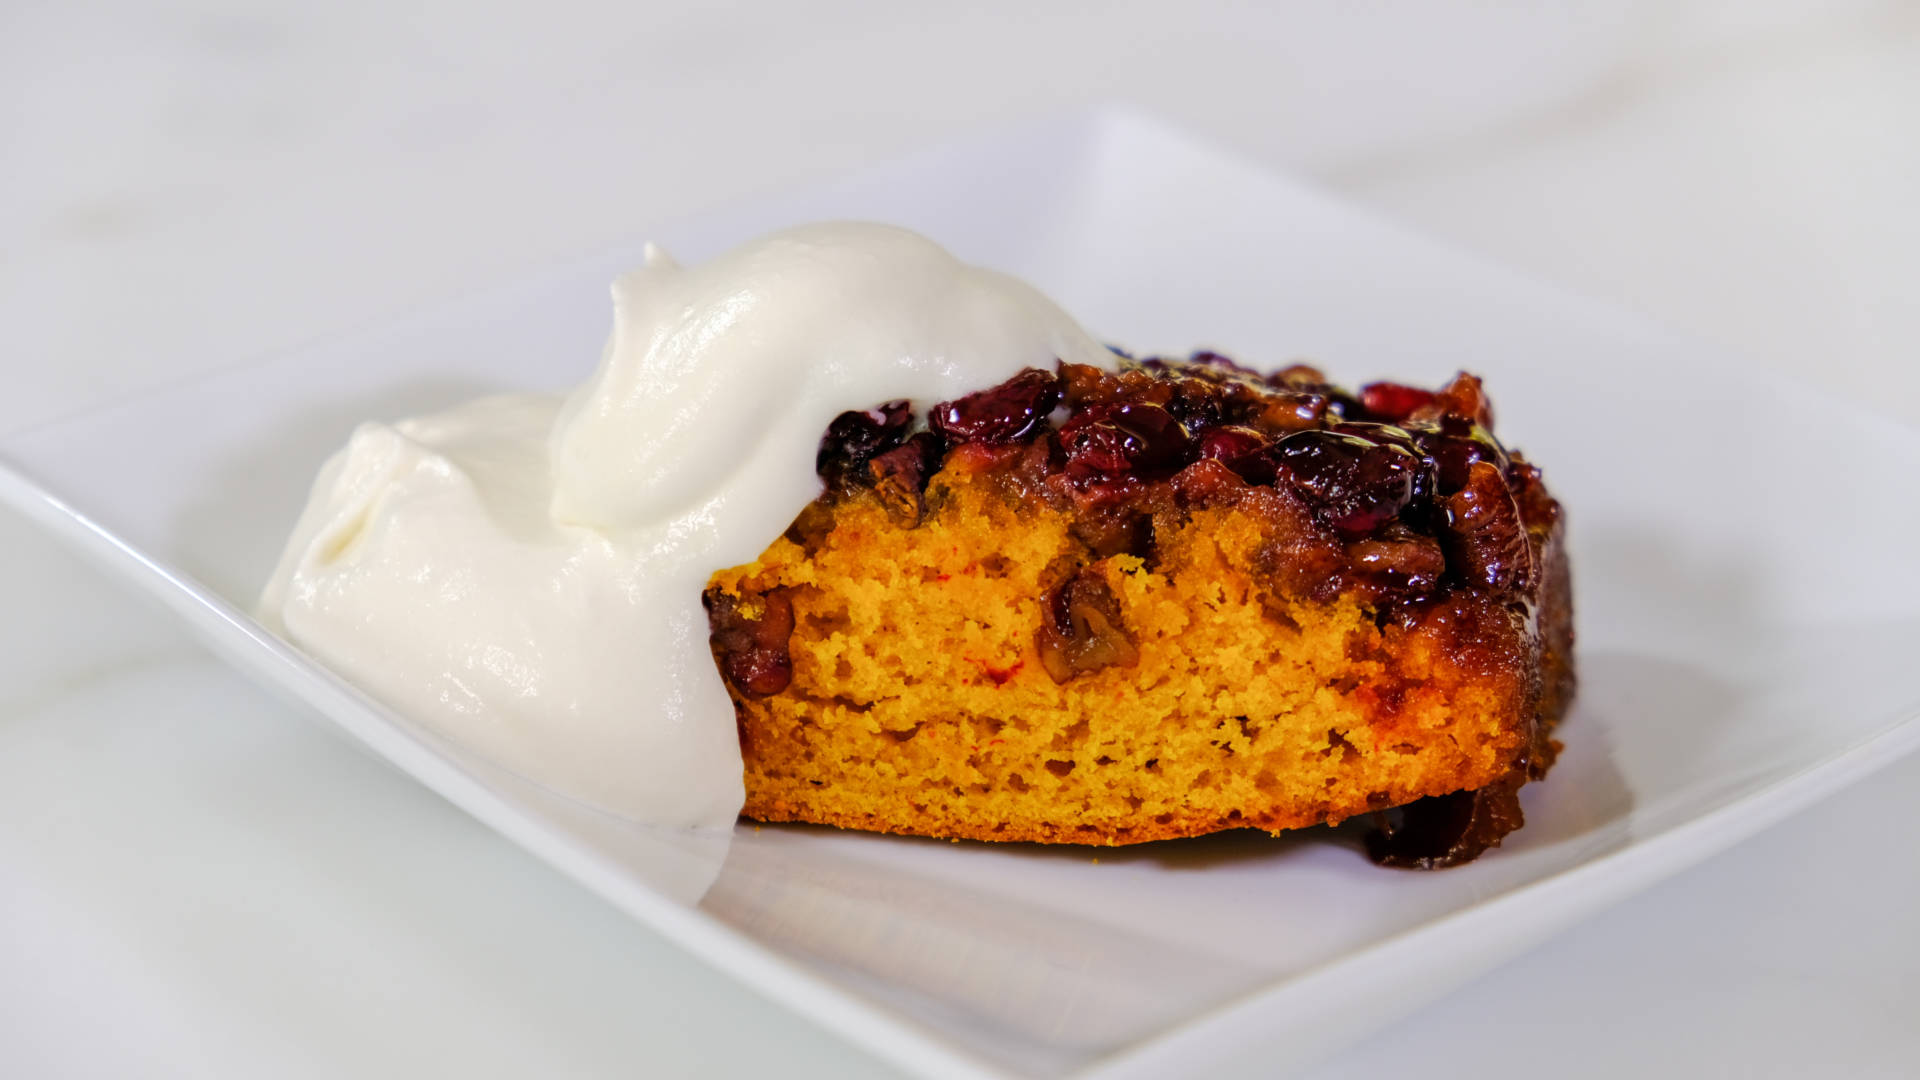 Emily Luchetti's Pumpkin Upside-Down Cake topped with fresh whipped cream.